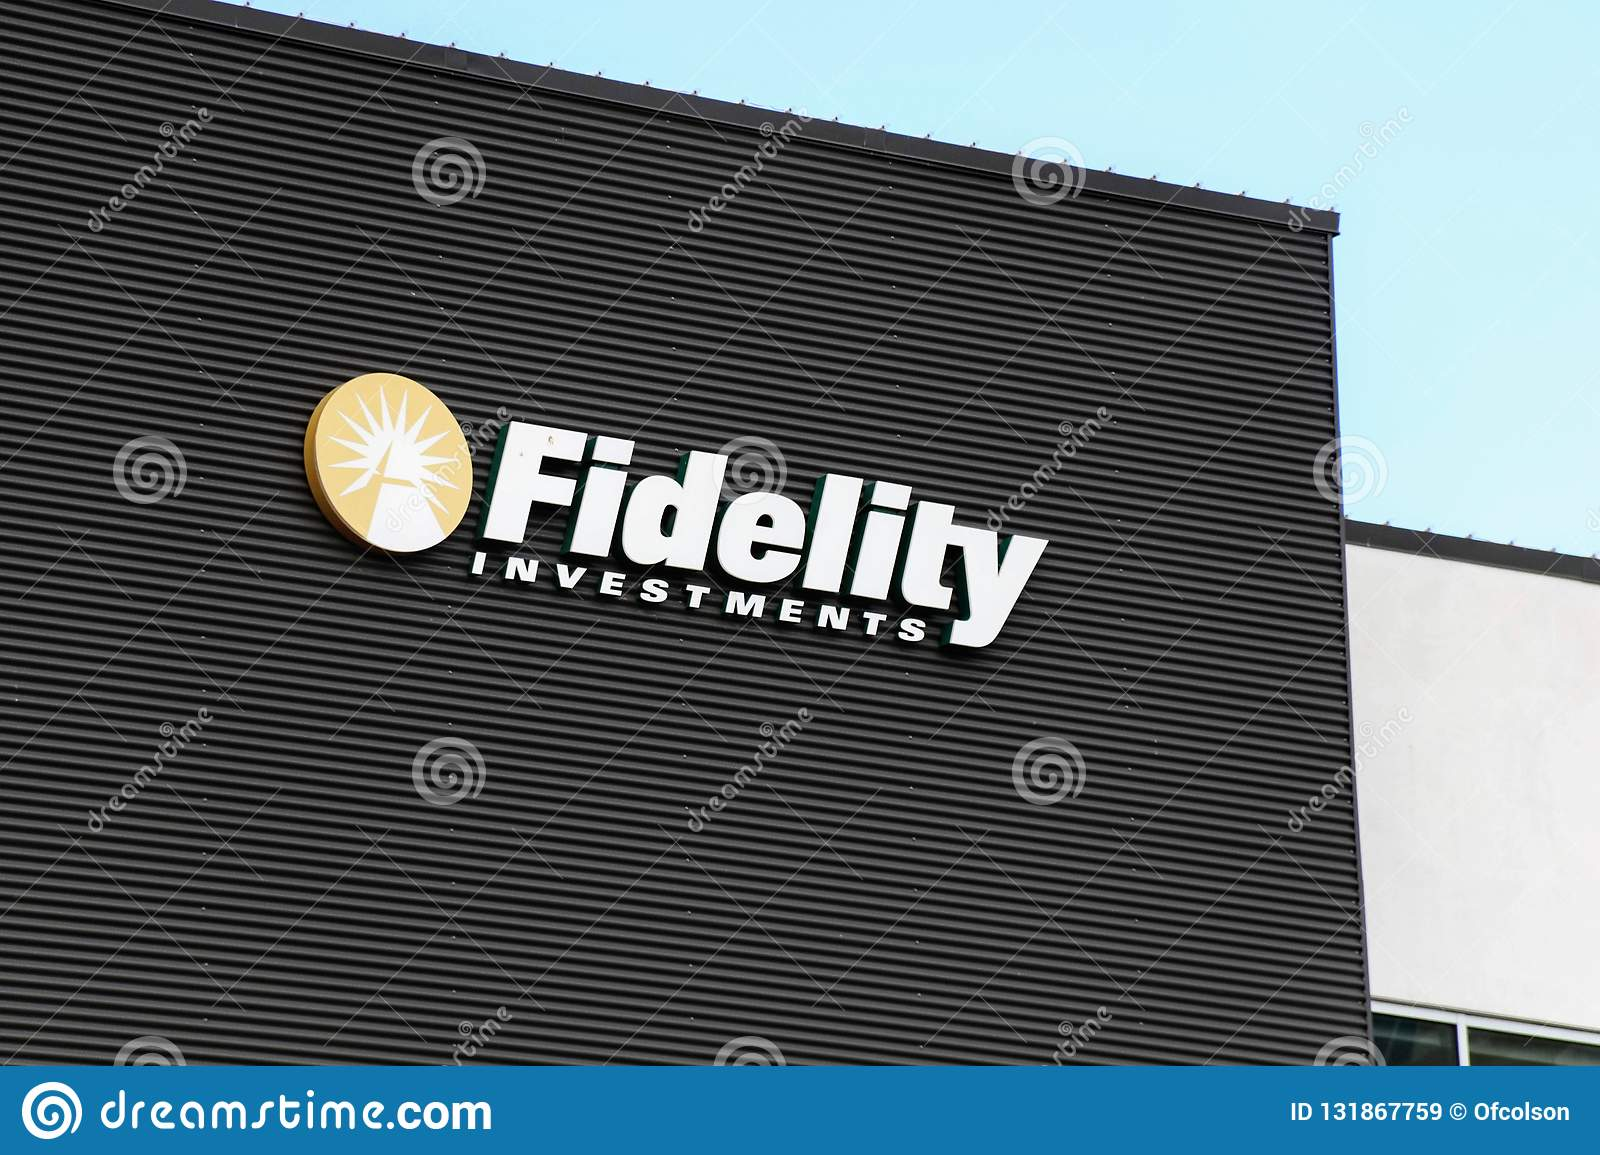 Fidelity Investments Logo On The Side Of A Building Editorial Stock